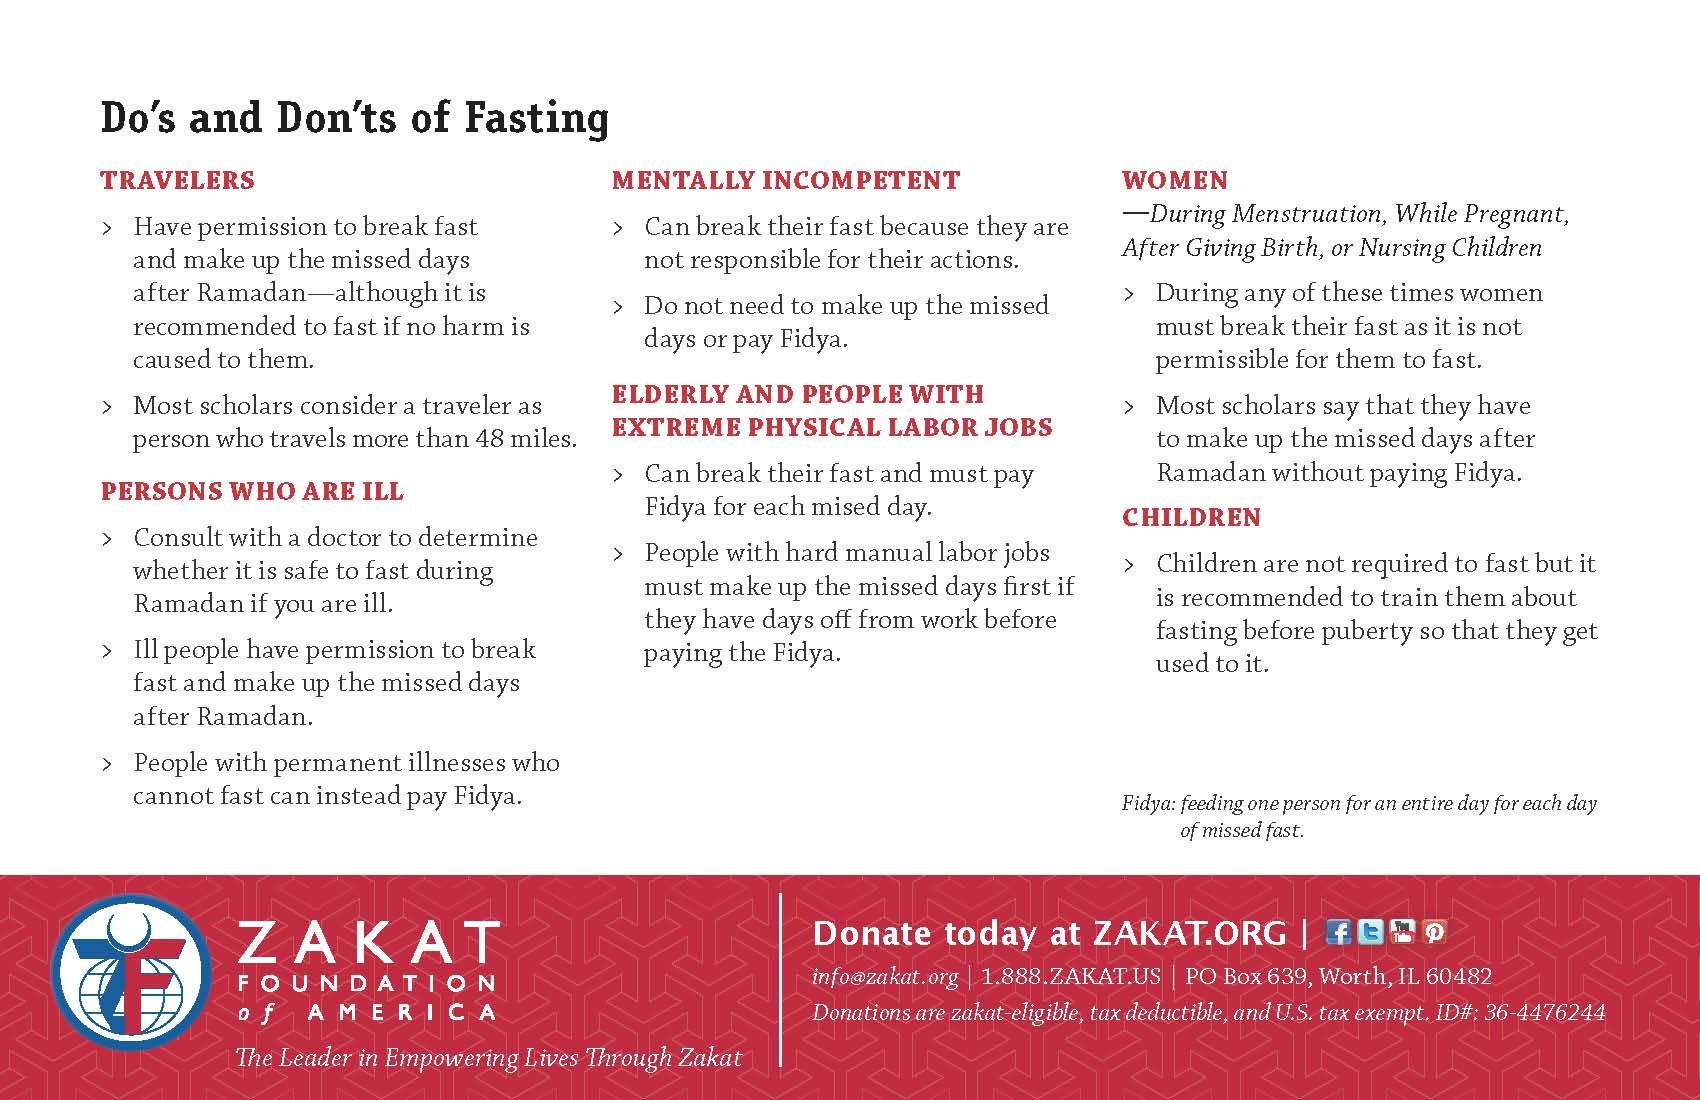 Do's and Dont's of Fasting